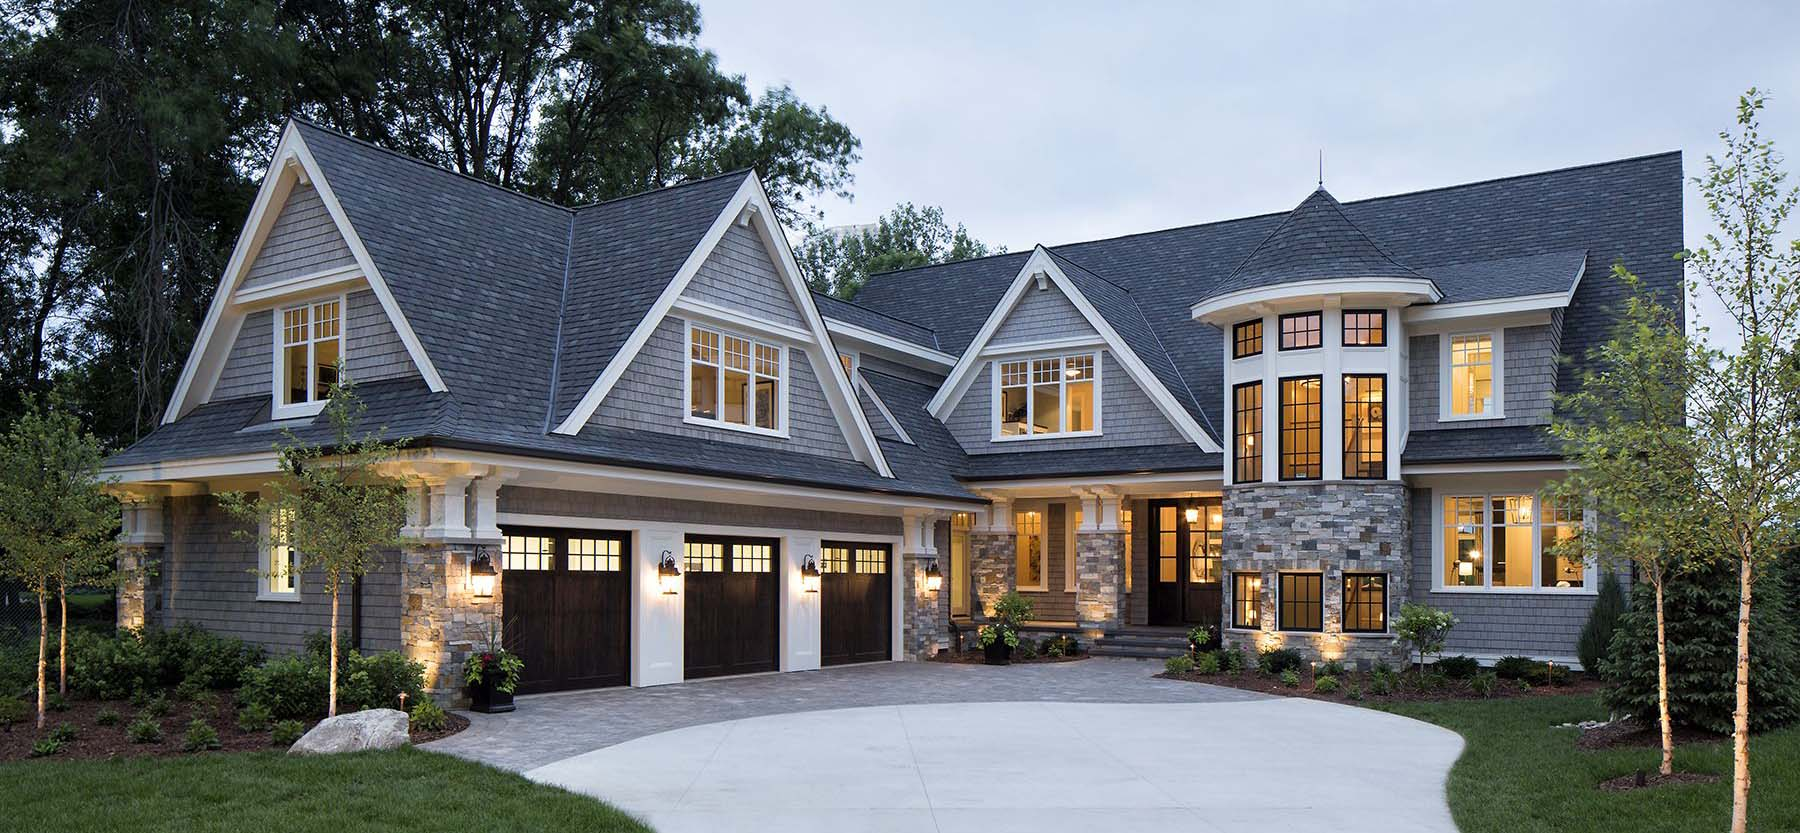 Beautiful custom home with blue gray siding and espresso stained real wood front door.